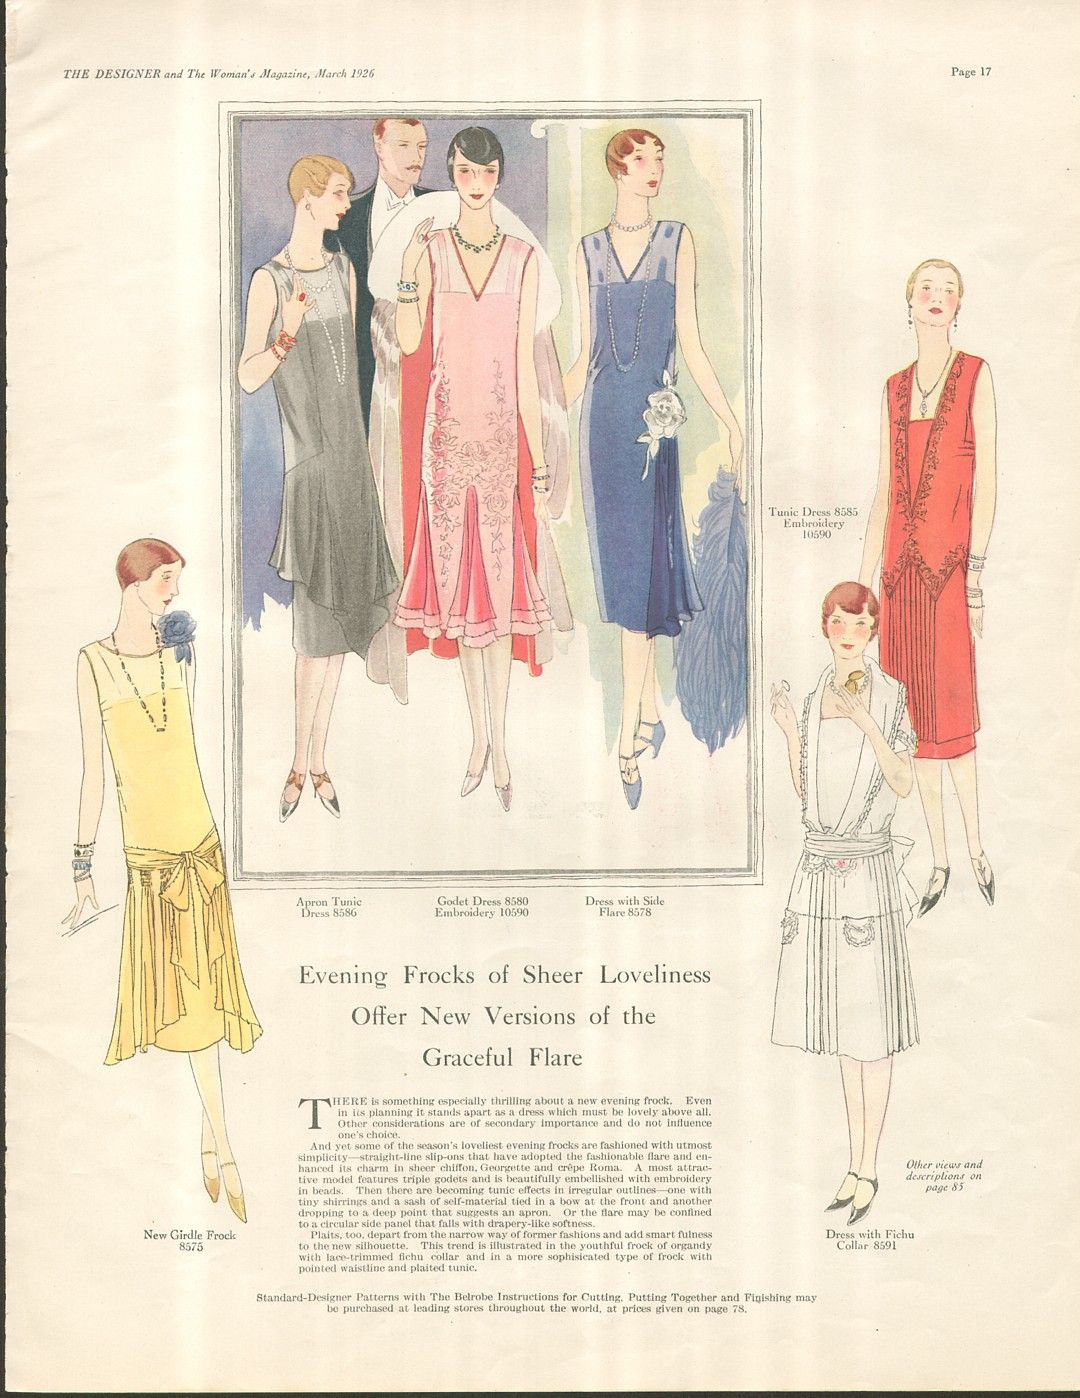 Used As Inspiration For Yet Another Apron Fashion Art Illustration Art Deco Fashion Vintage Art Deco